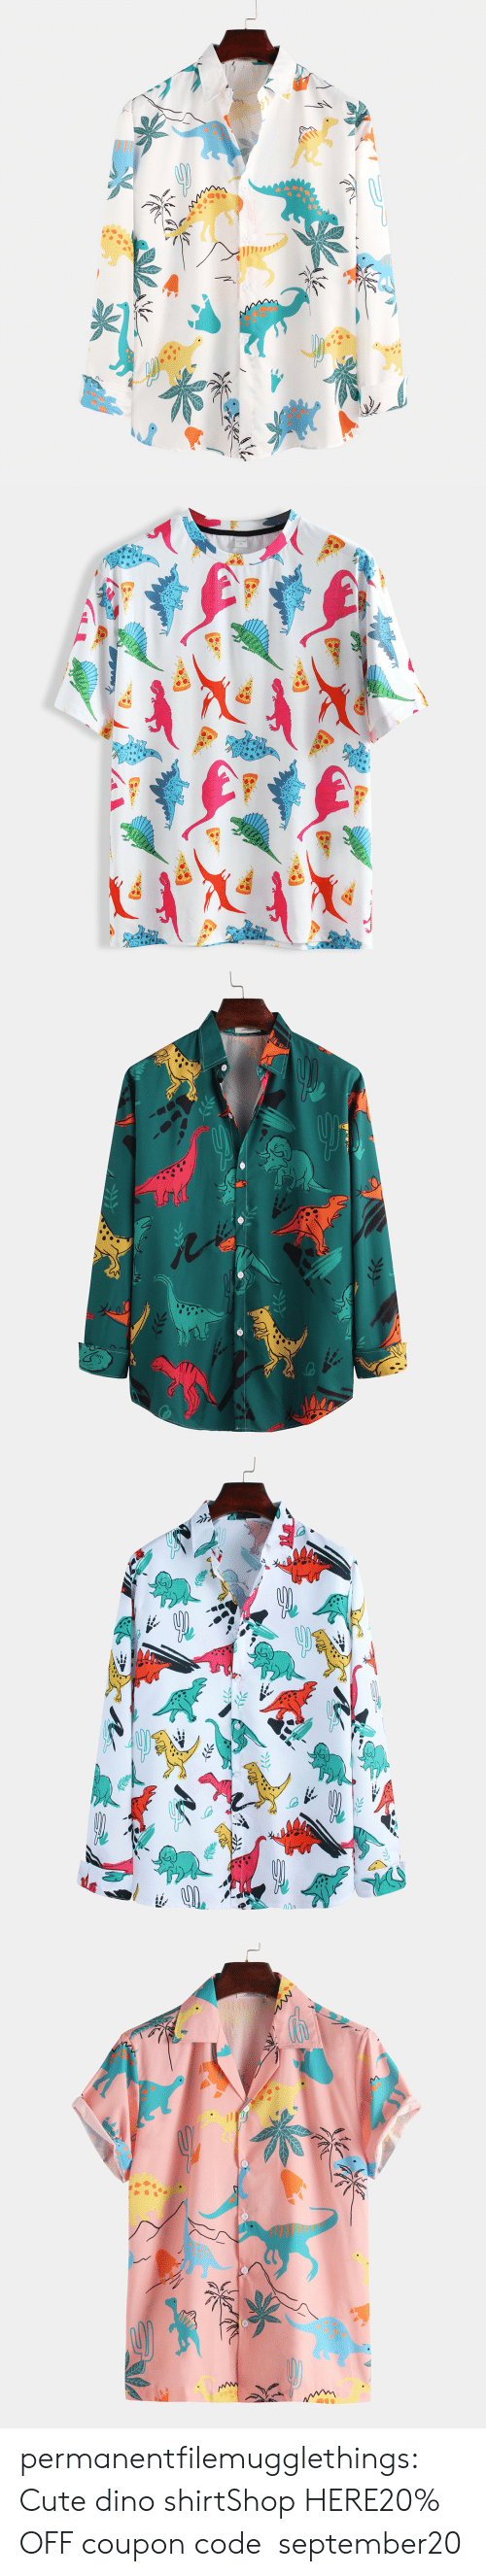 dino: permanentfilemugglethings:  Cute dino shirtShop HERE20% OFF coupon code:september20